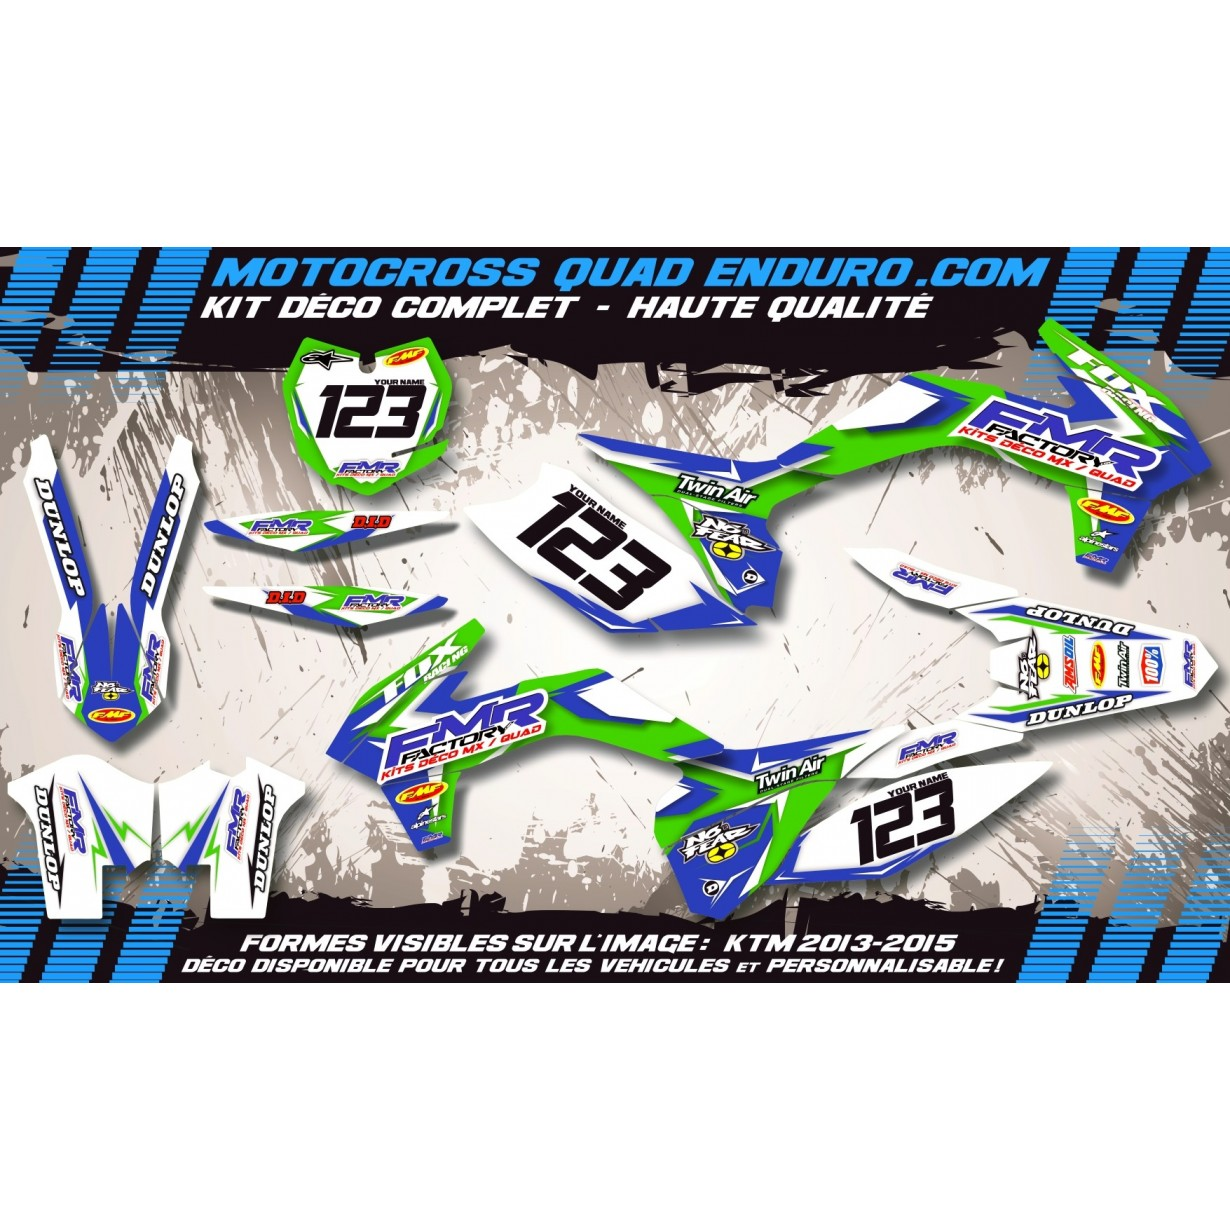 KIT DÉCO Perso 450 KLX 08-15 Fmr Factory MA13B